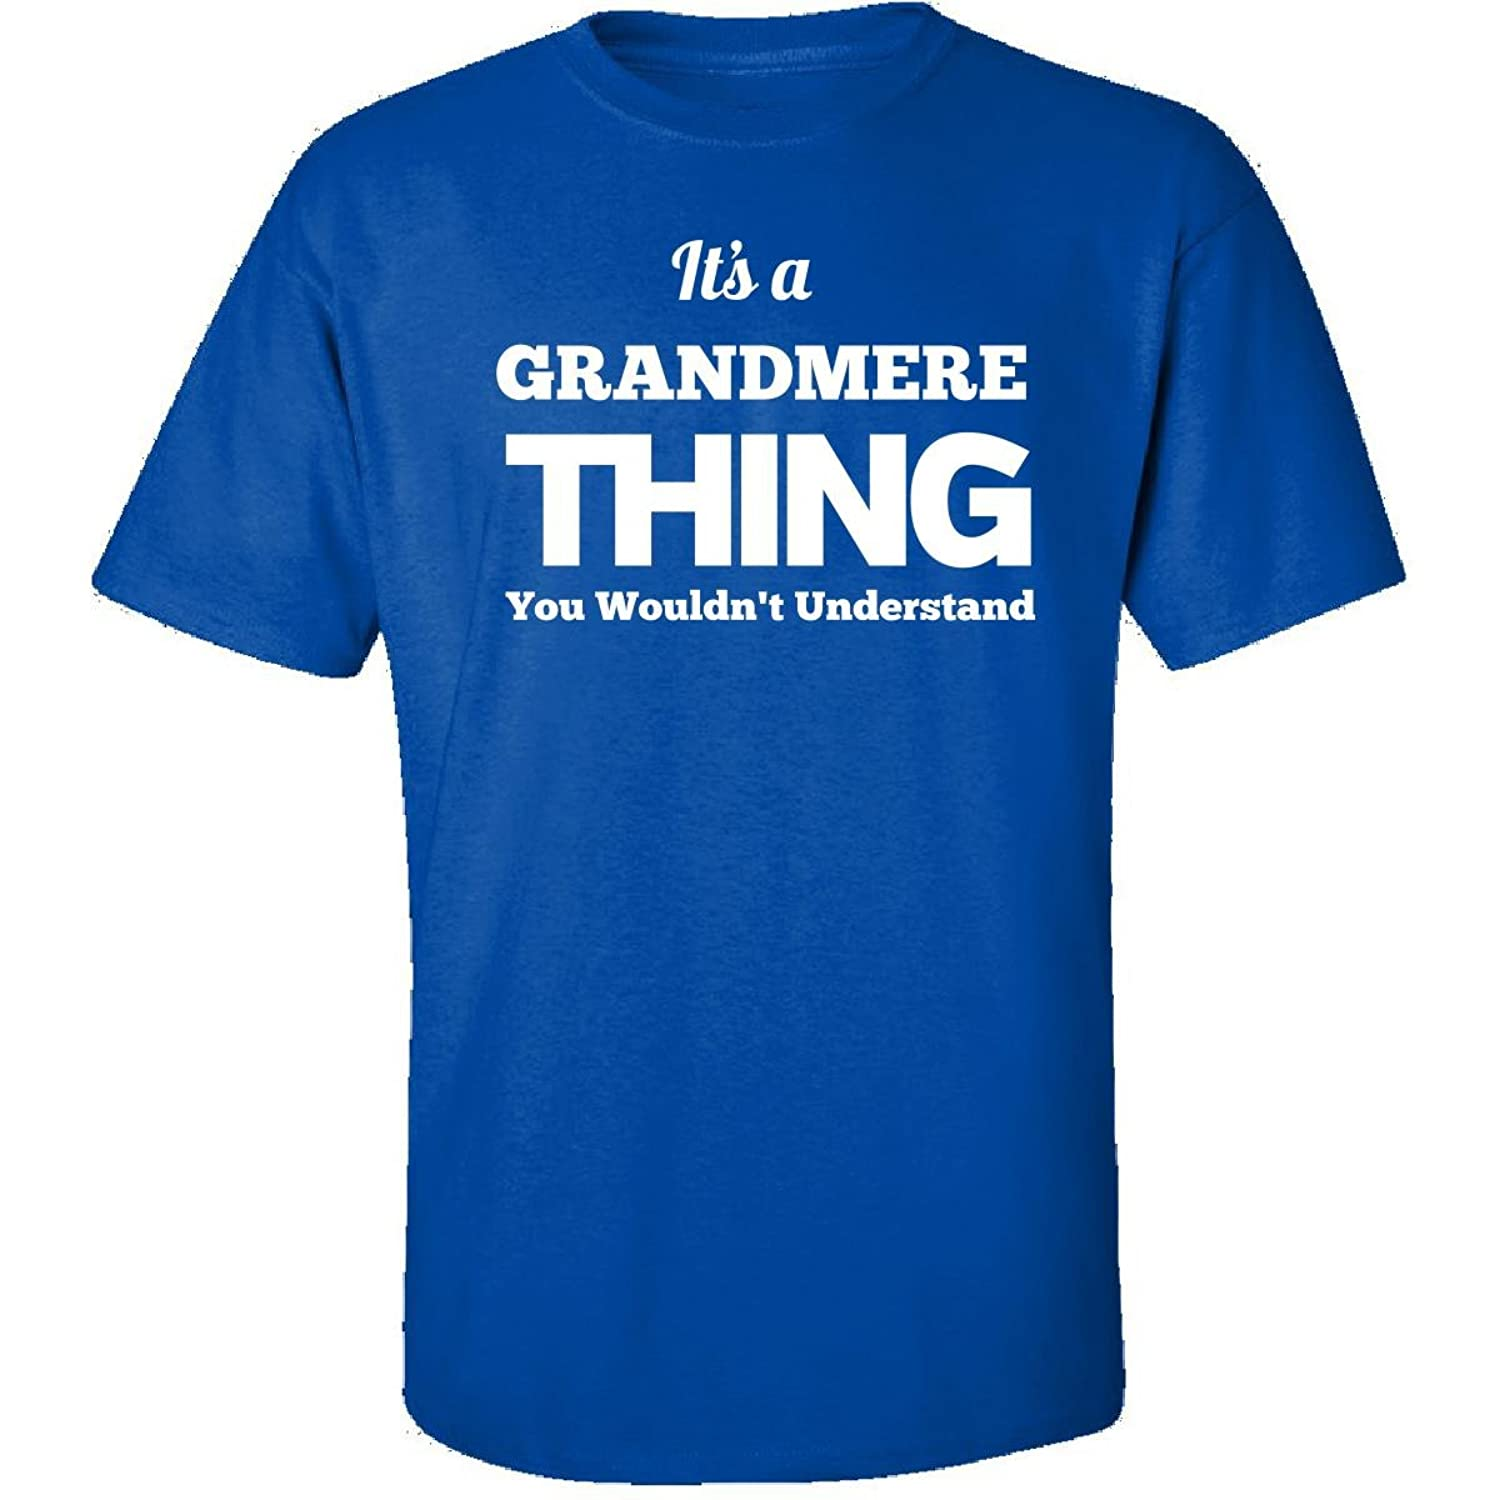 Its A Grandmere Thing You Wouldnt Understand - Adult Shirt